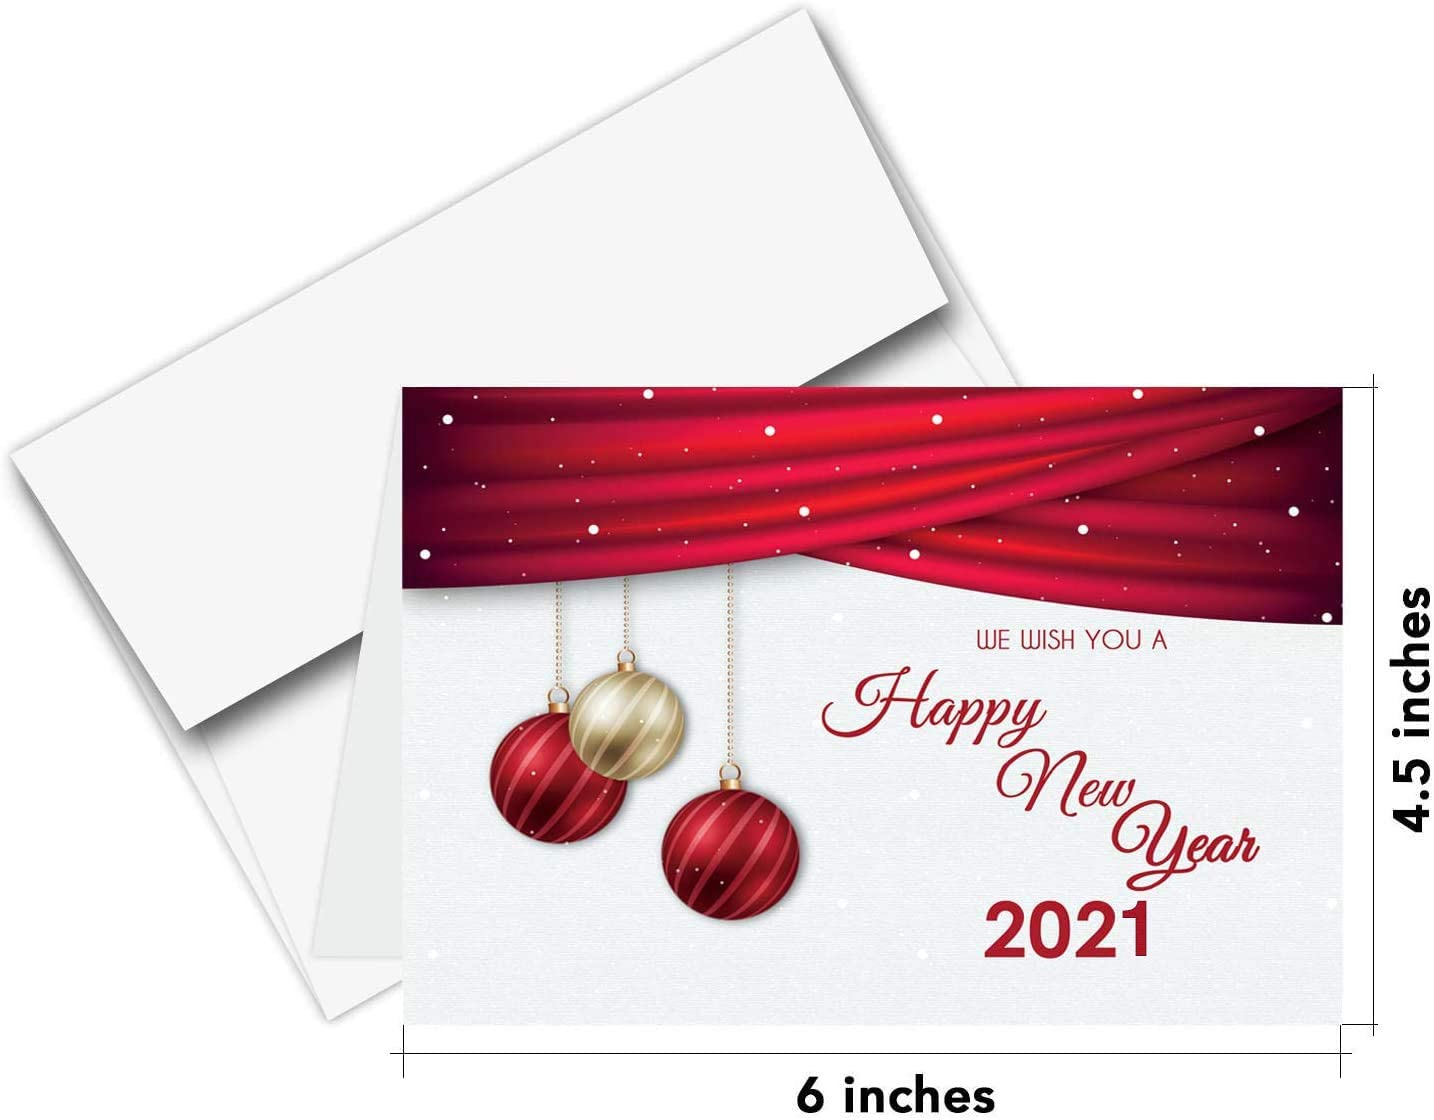 amazon com 2021 happy new year cards envelopes christmas holiday xmas new yrs red thank you greeting card set 25 half fold cards a6 envelopes 4 5 x 6 inches office products 2021 happy new year cards envelopes christmas holiday xmas new yrs red thank you greeting card set 25 half fold cards a6 envelopes 4 5 x